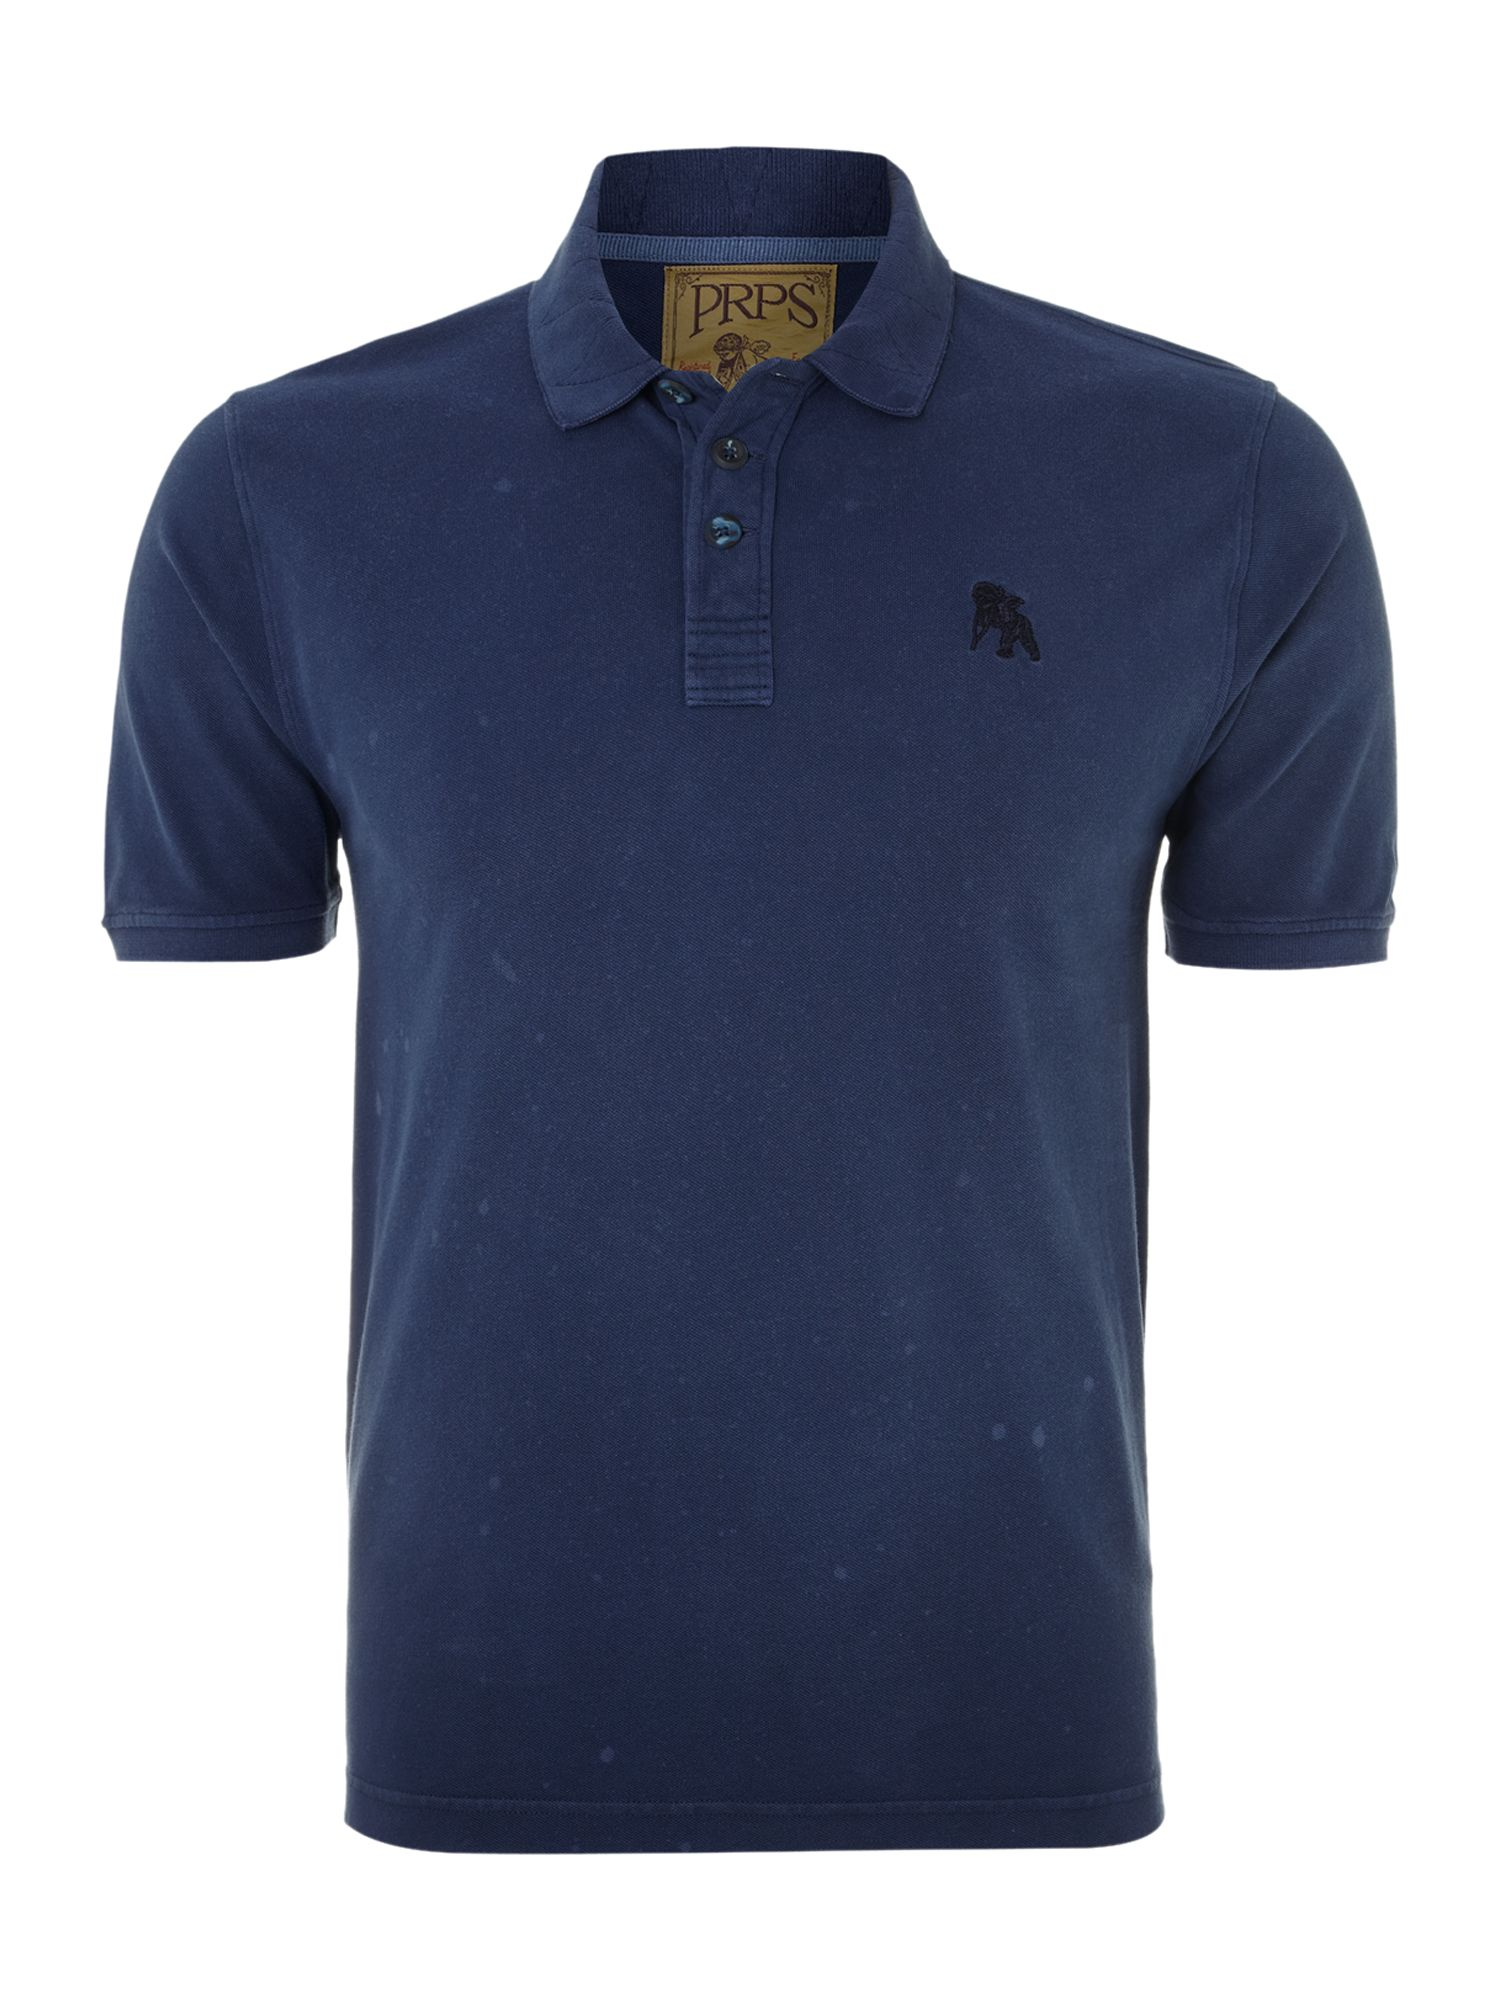 Prps classic three button polo shirt in blue for men navy for 3 button polo shirts